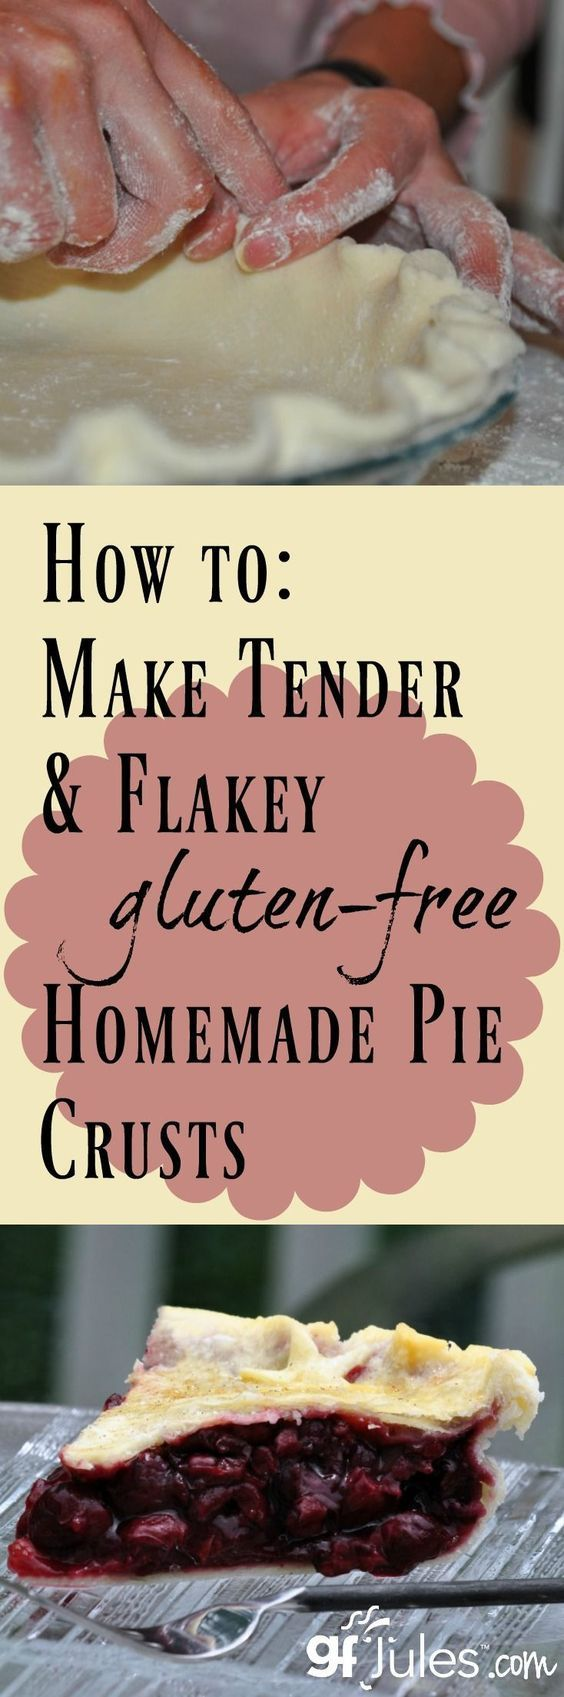 Gluten free pie crust tutorial - video, recipe and step-by-step photos to get… | The holidays are coming up and you're going to need gluten free pie crusts for all of the pies you're making for Thanksgiving and Christmas.